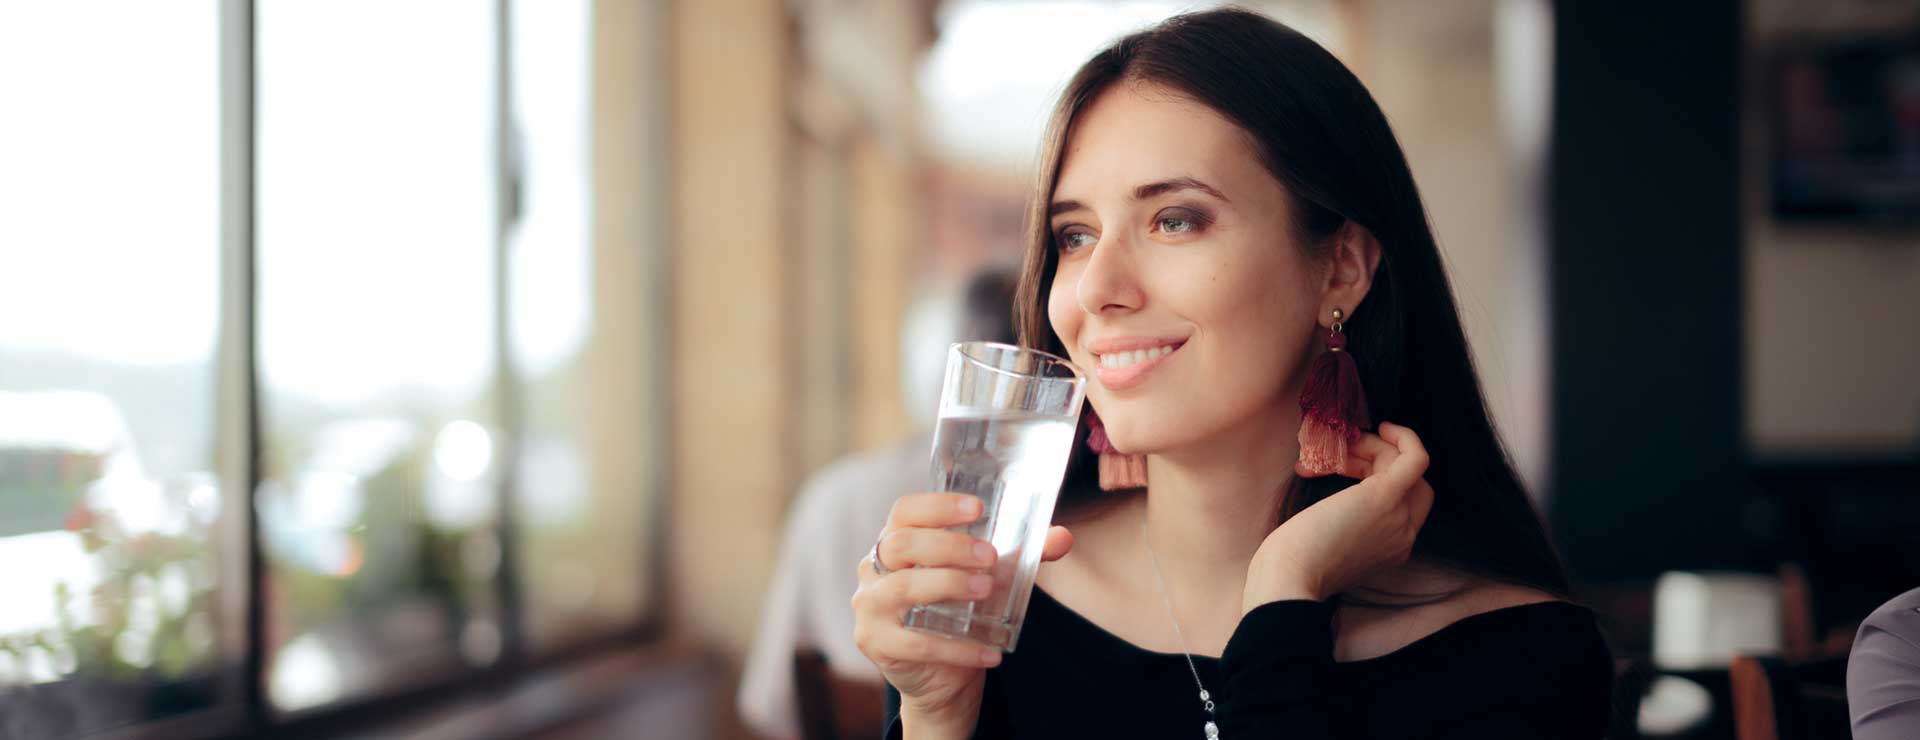 Women drinking water during fasting